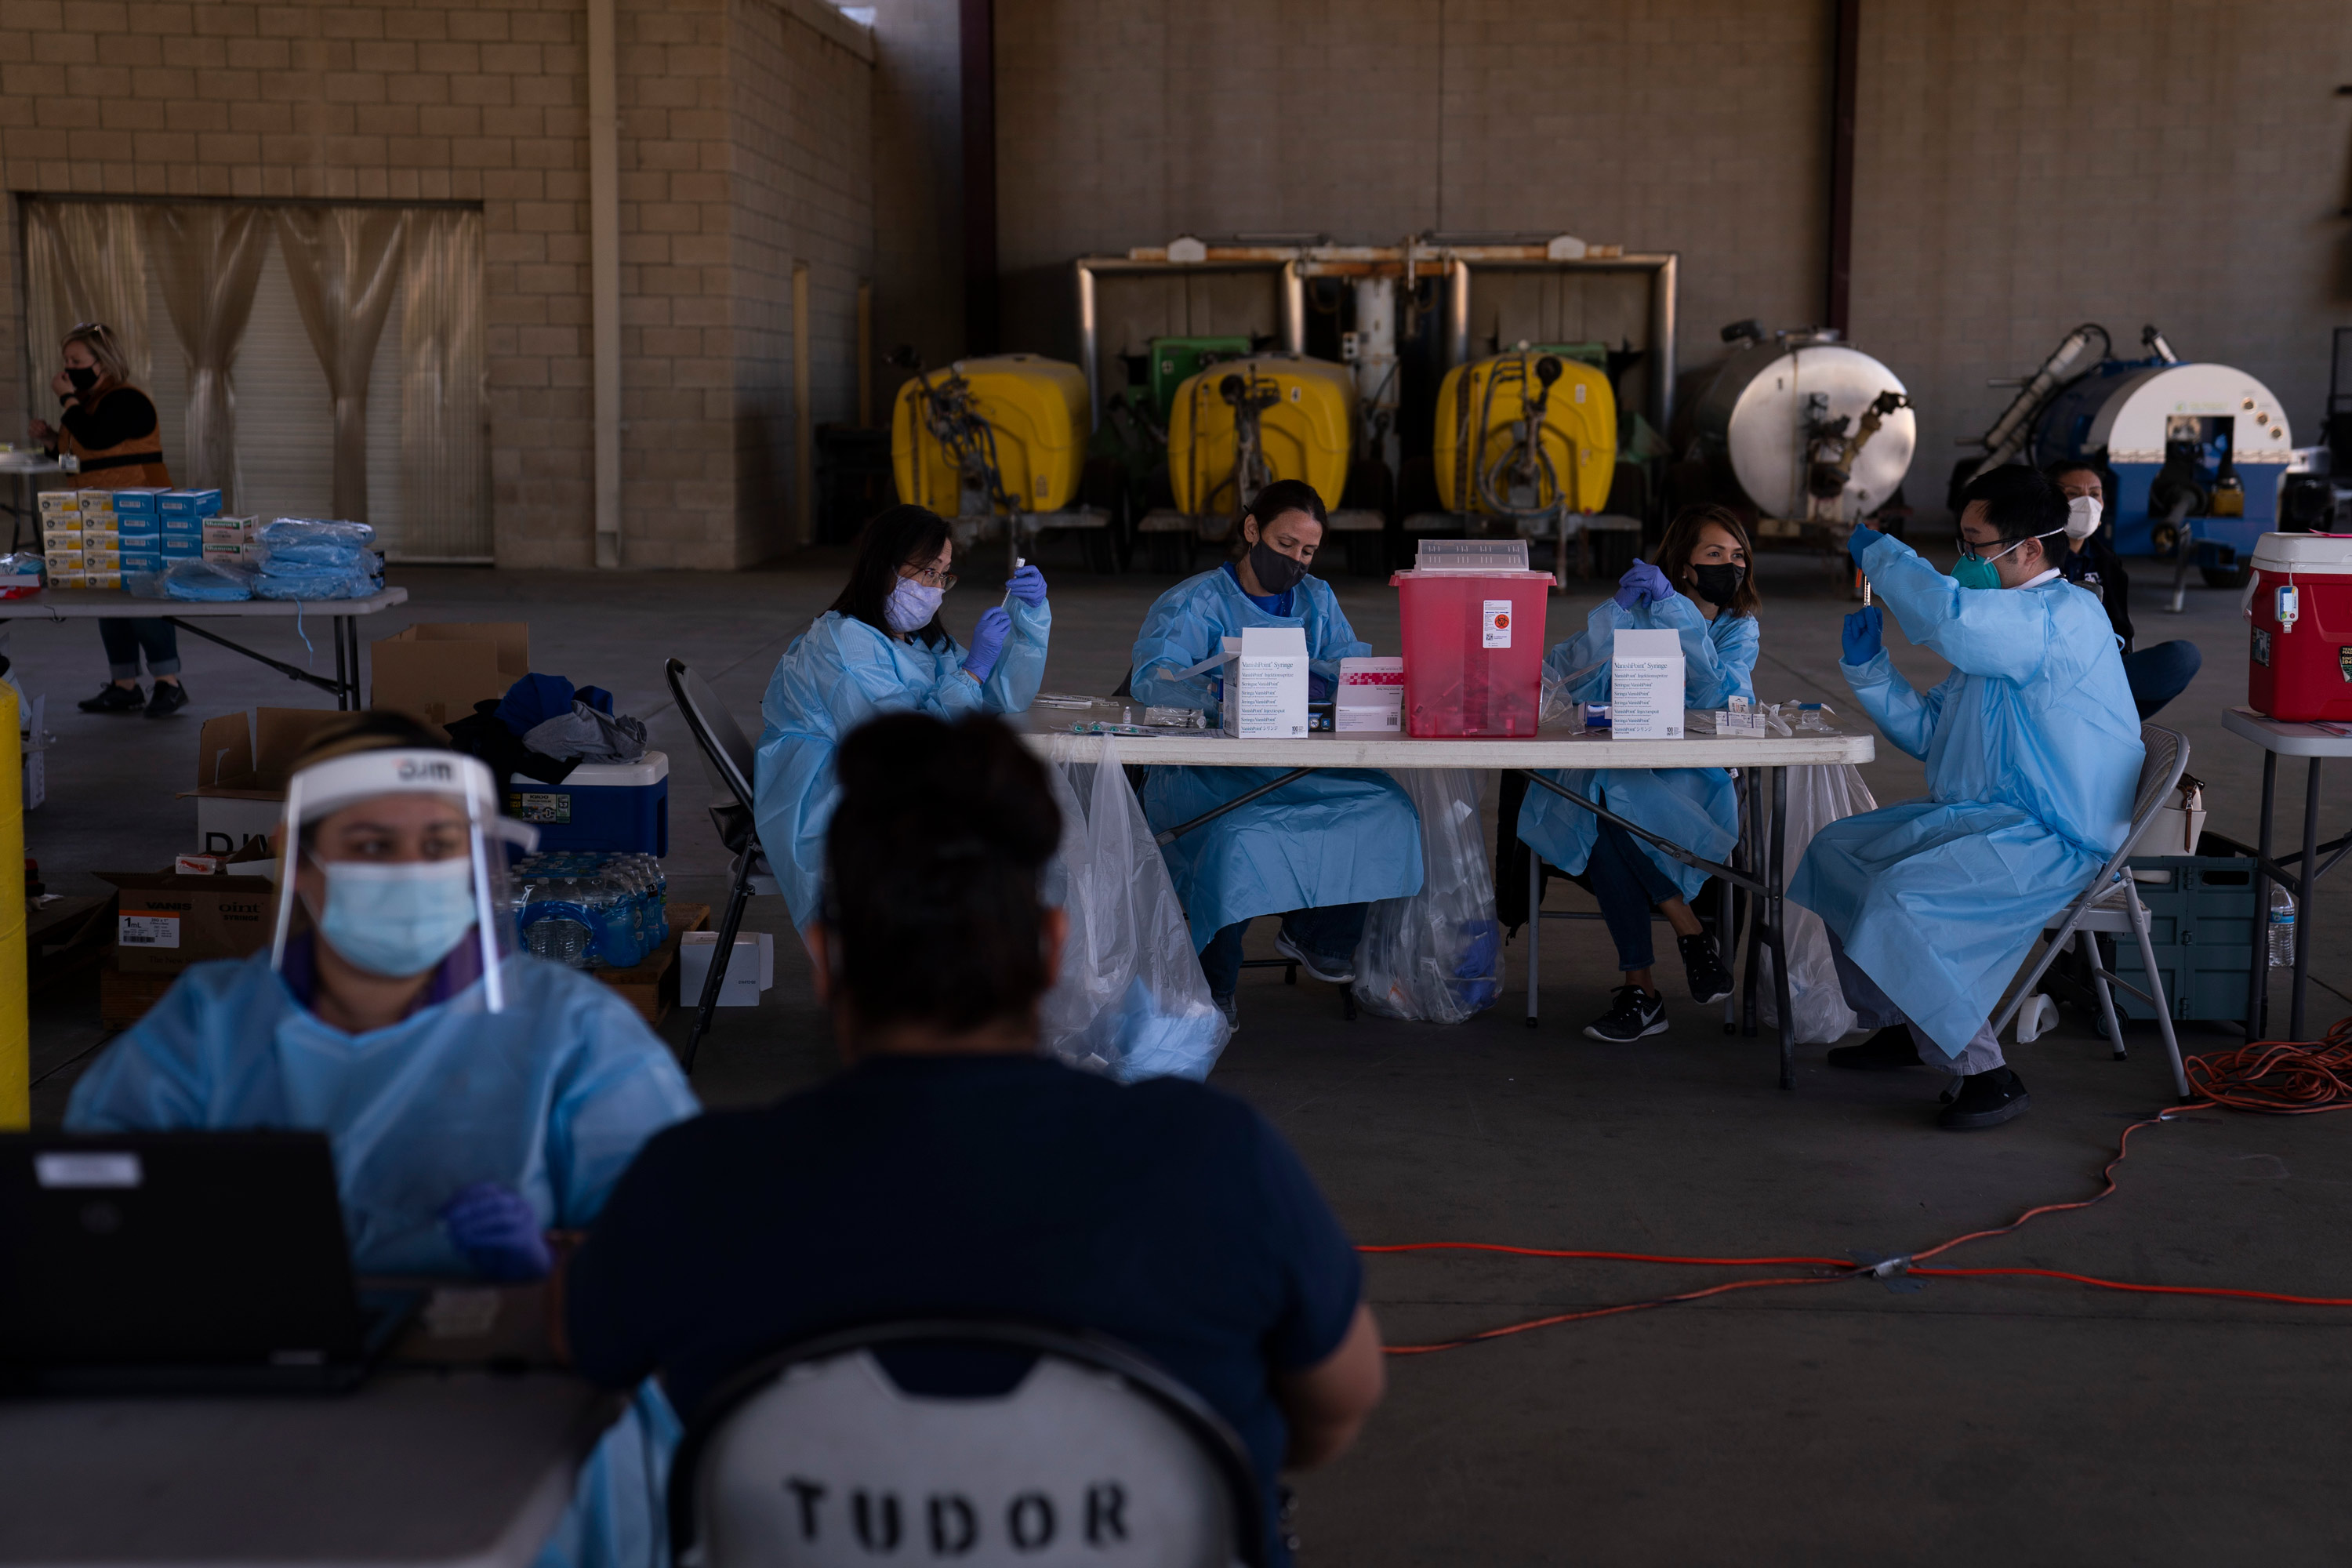 Medical workers prepare the Pfizer-BioNTech COVID-19 vaccine in Mecca, California, on January 21.